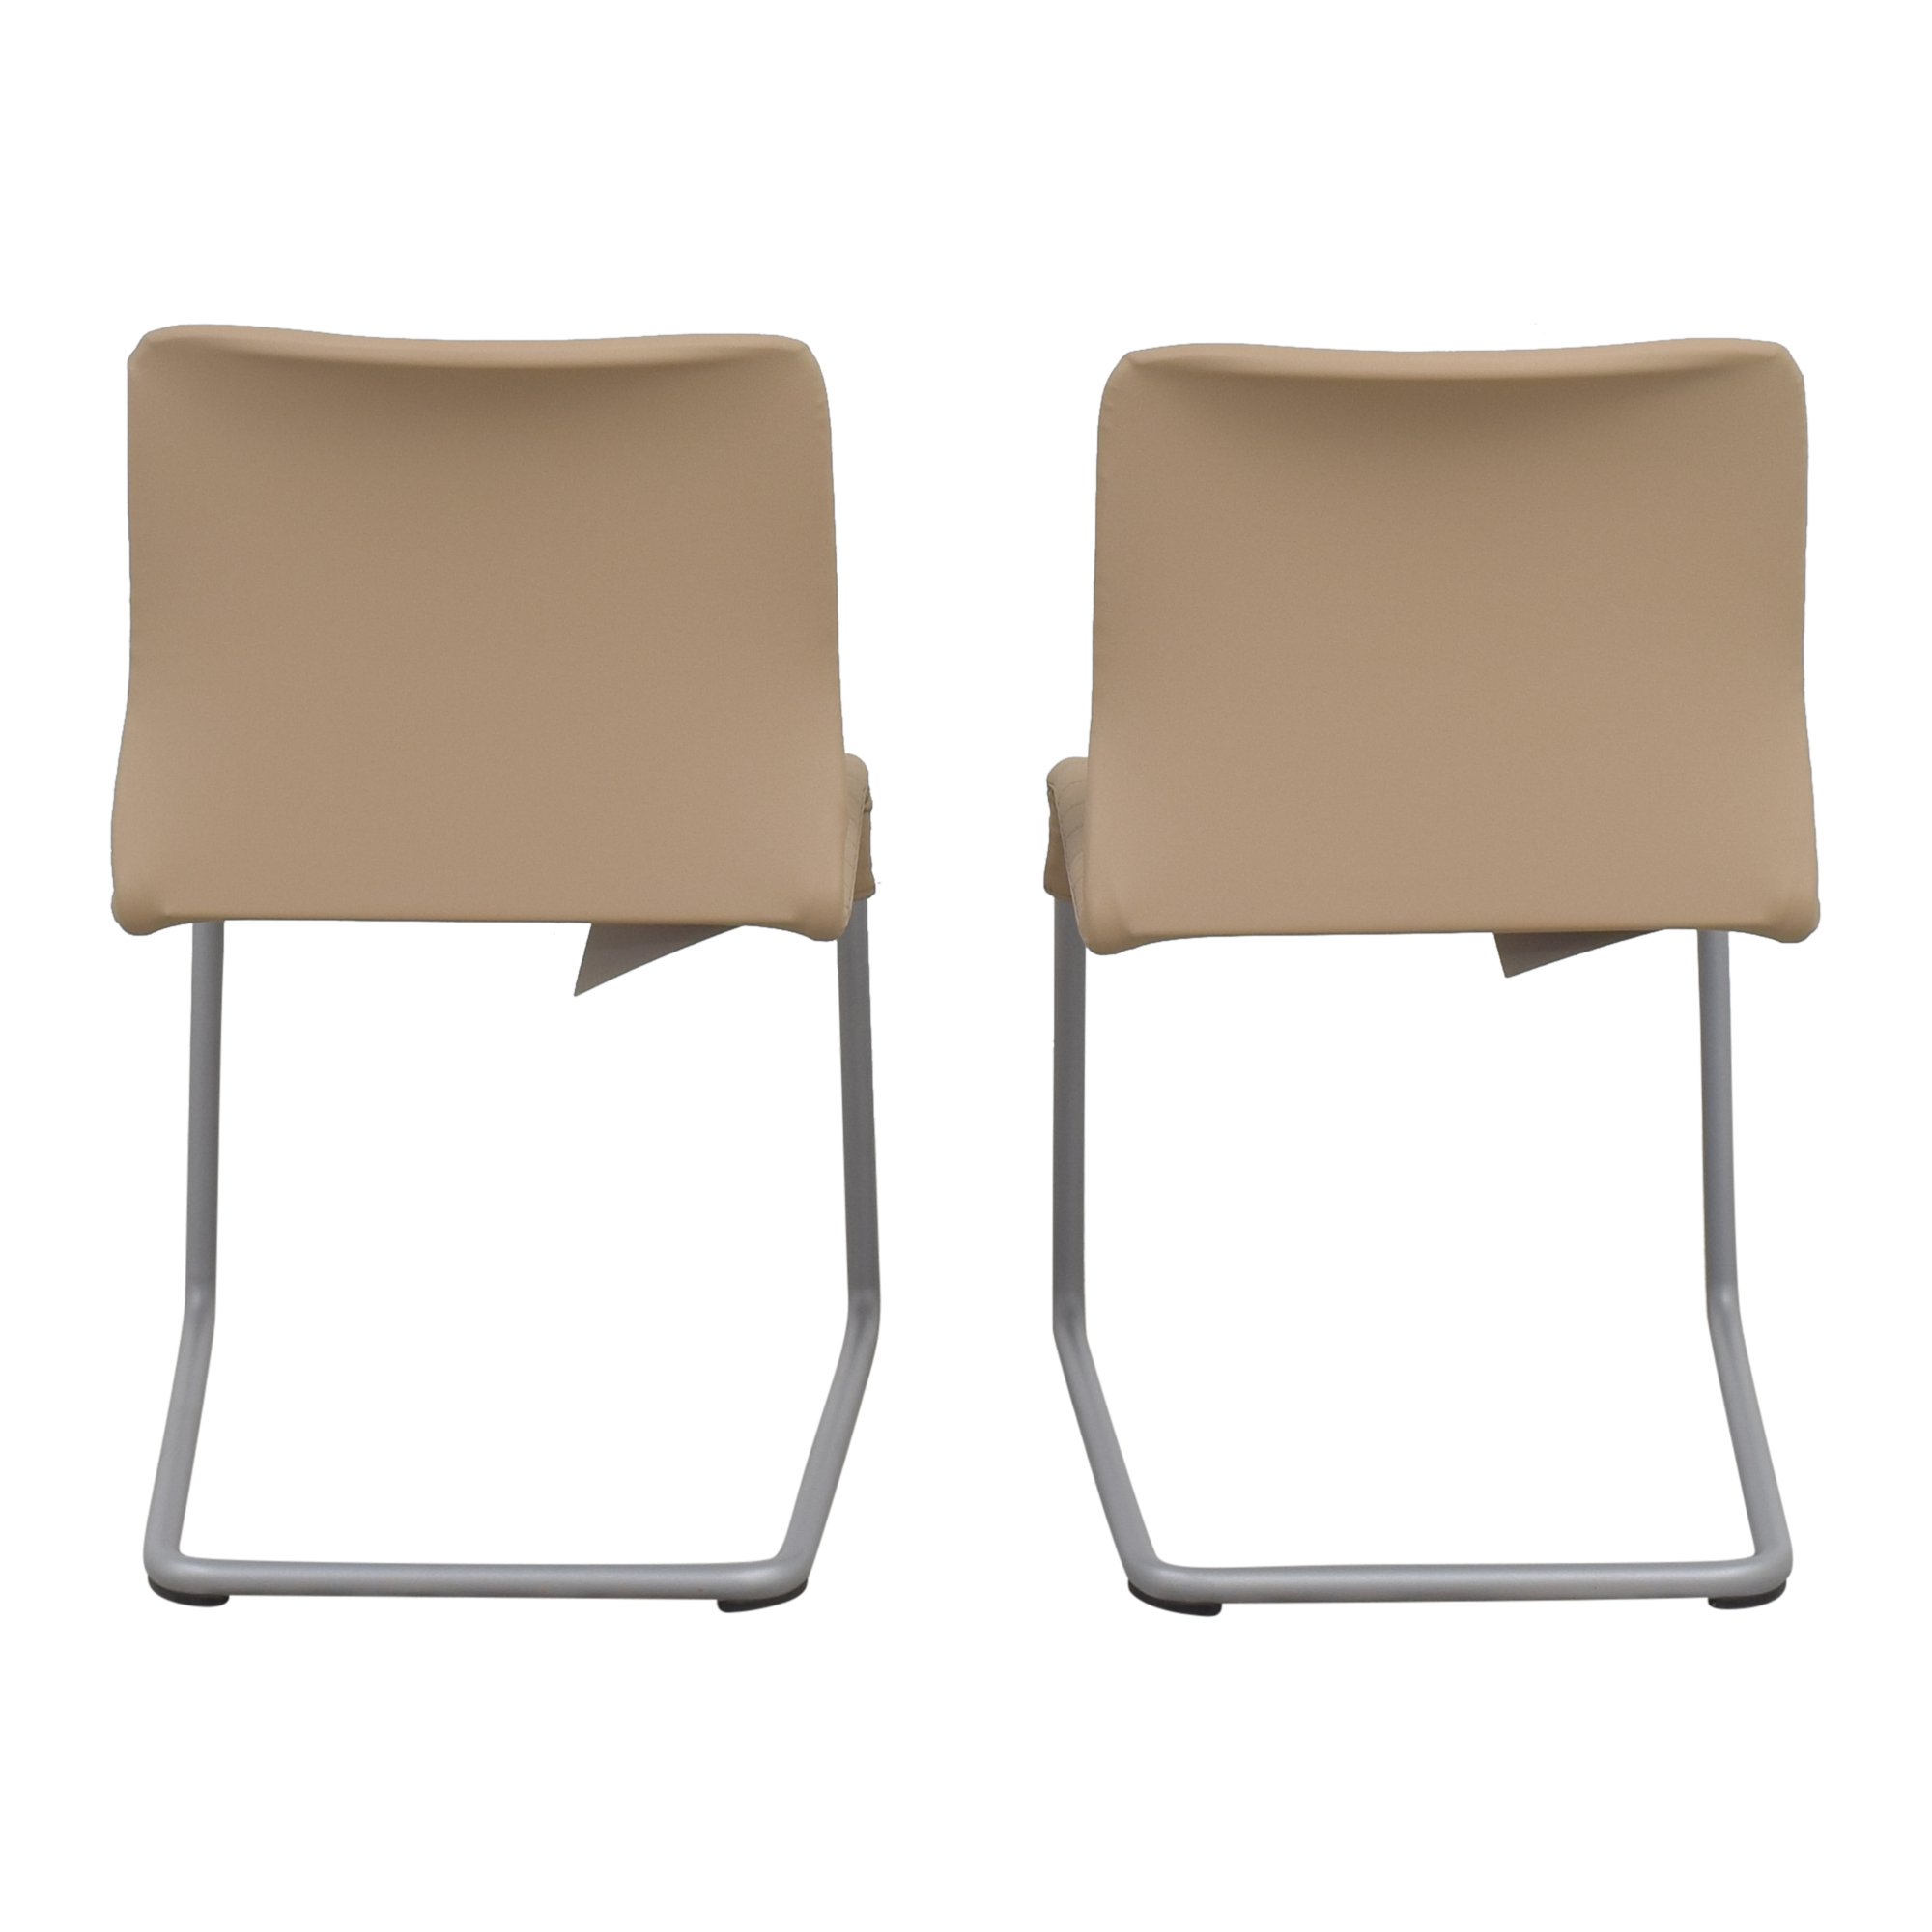 Global Furniture Group Global Furniture Group Lite Cantilever Frame Side Chairs pa